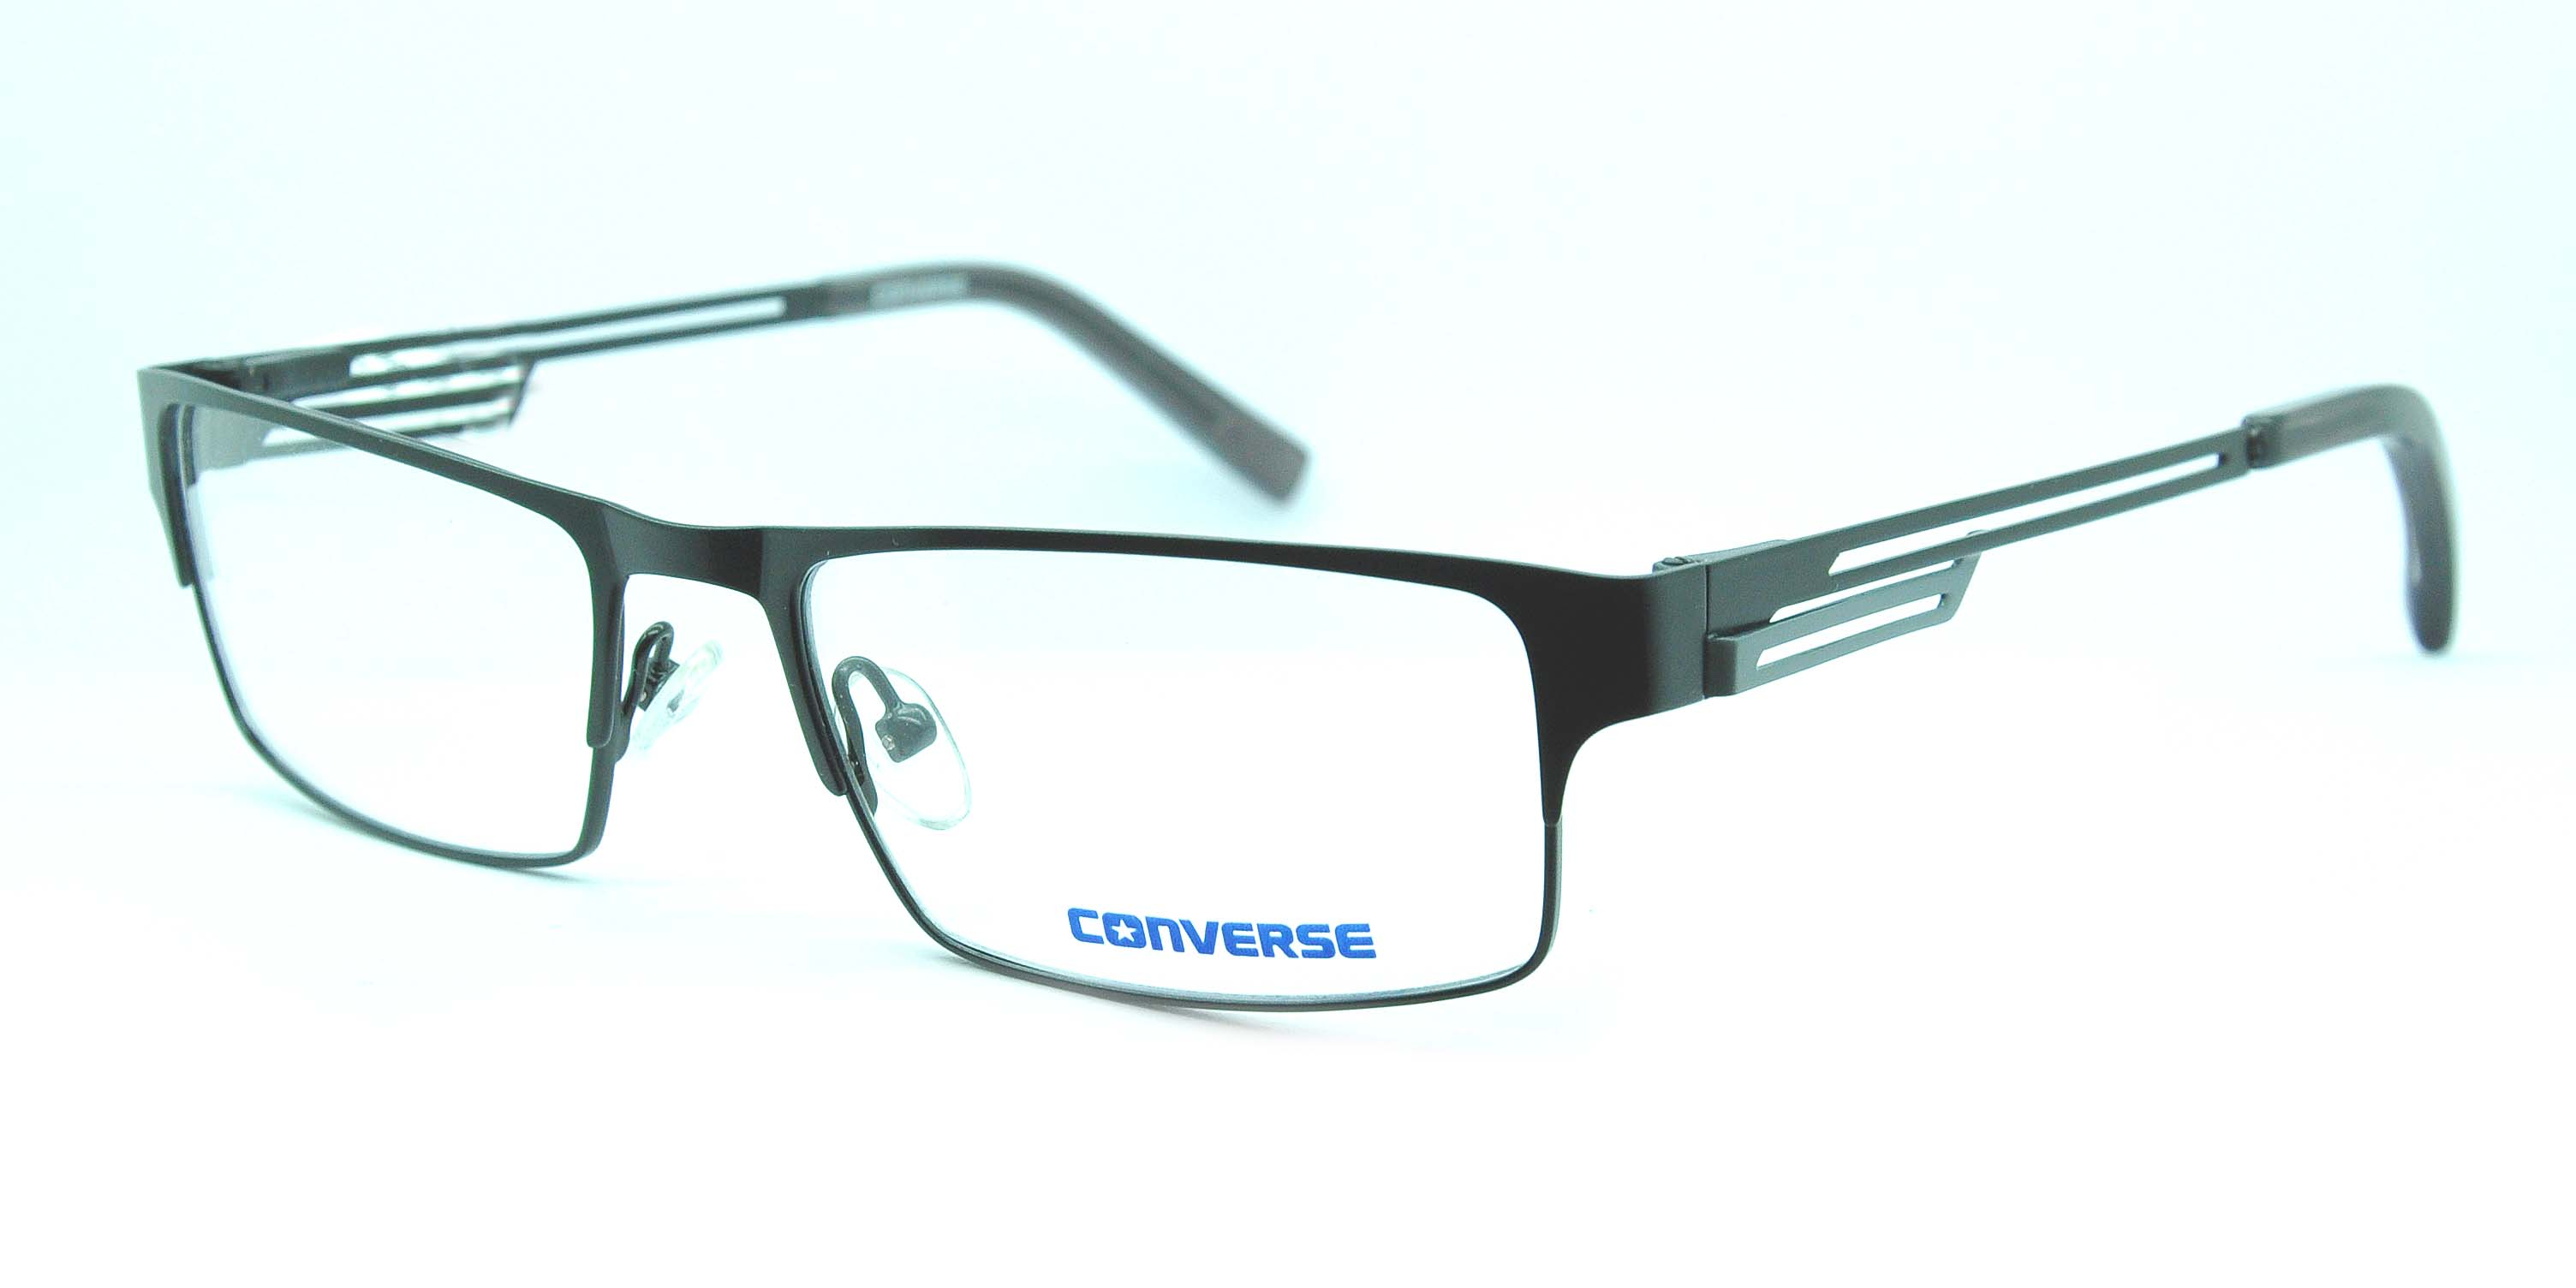 converse prescription glasses and spectacle frames collection